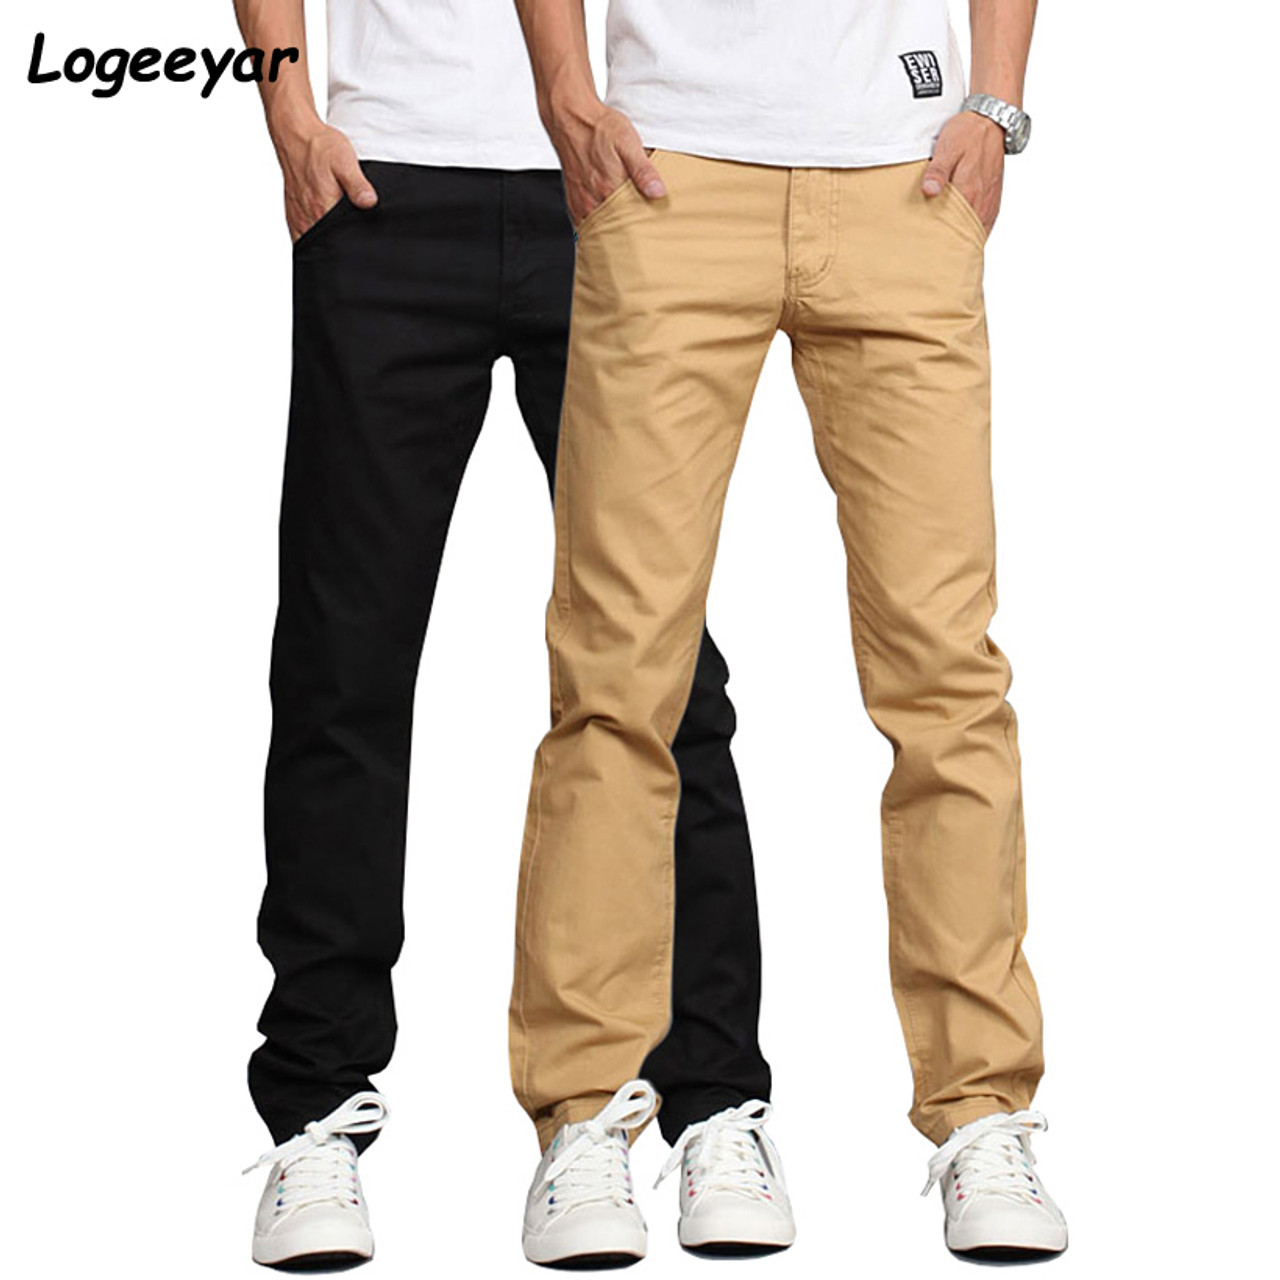 644d62b0699d0 2017 New Design Casual Men Pants Cotton Slim Pant Straight Trousers Fashion  Business Solid Khaki Black ...